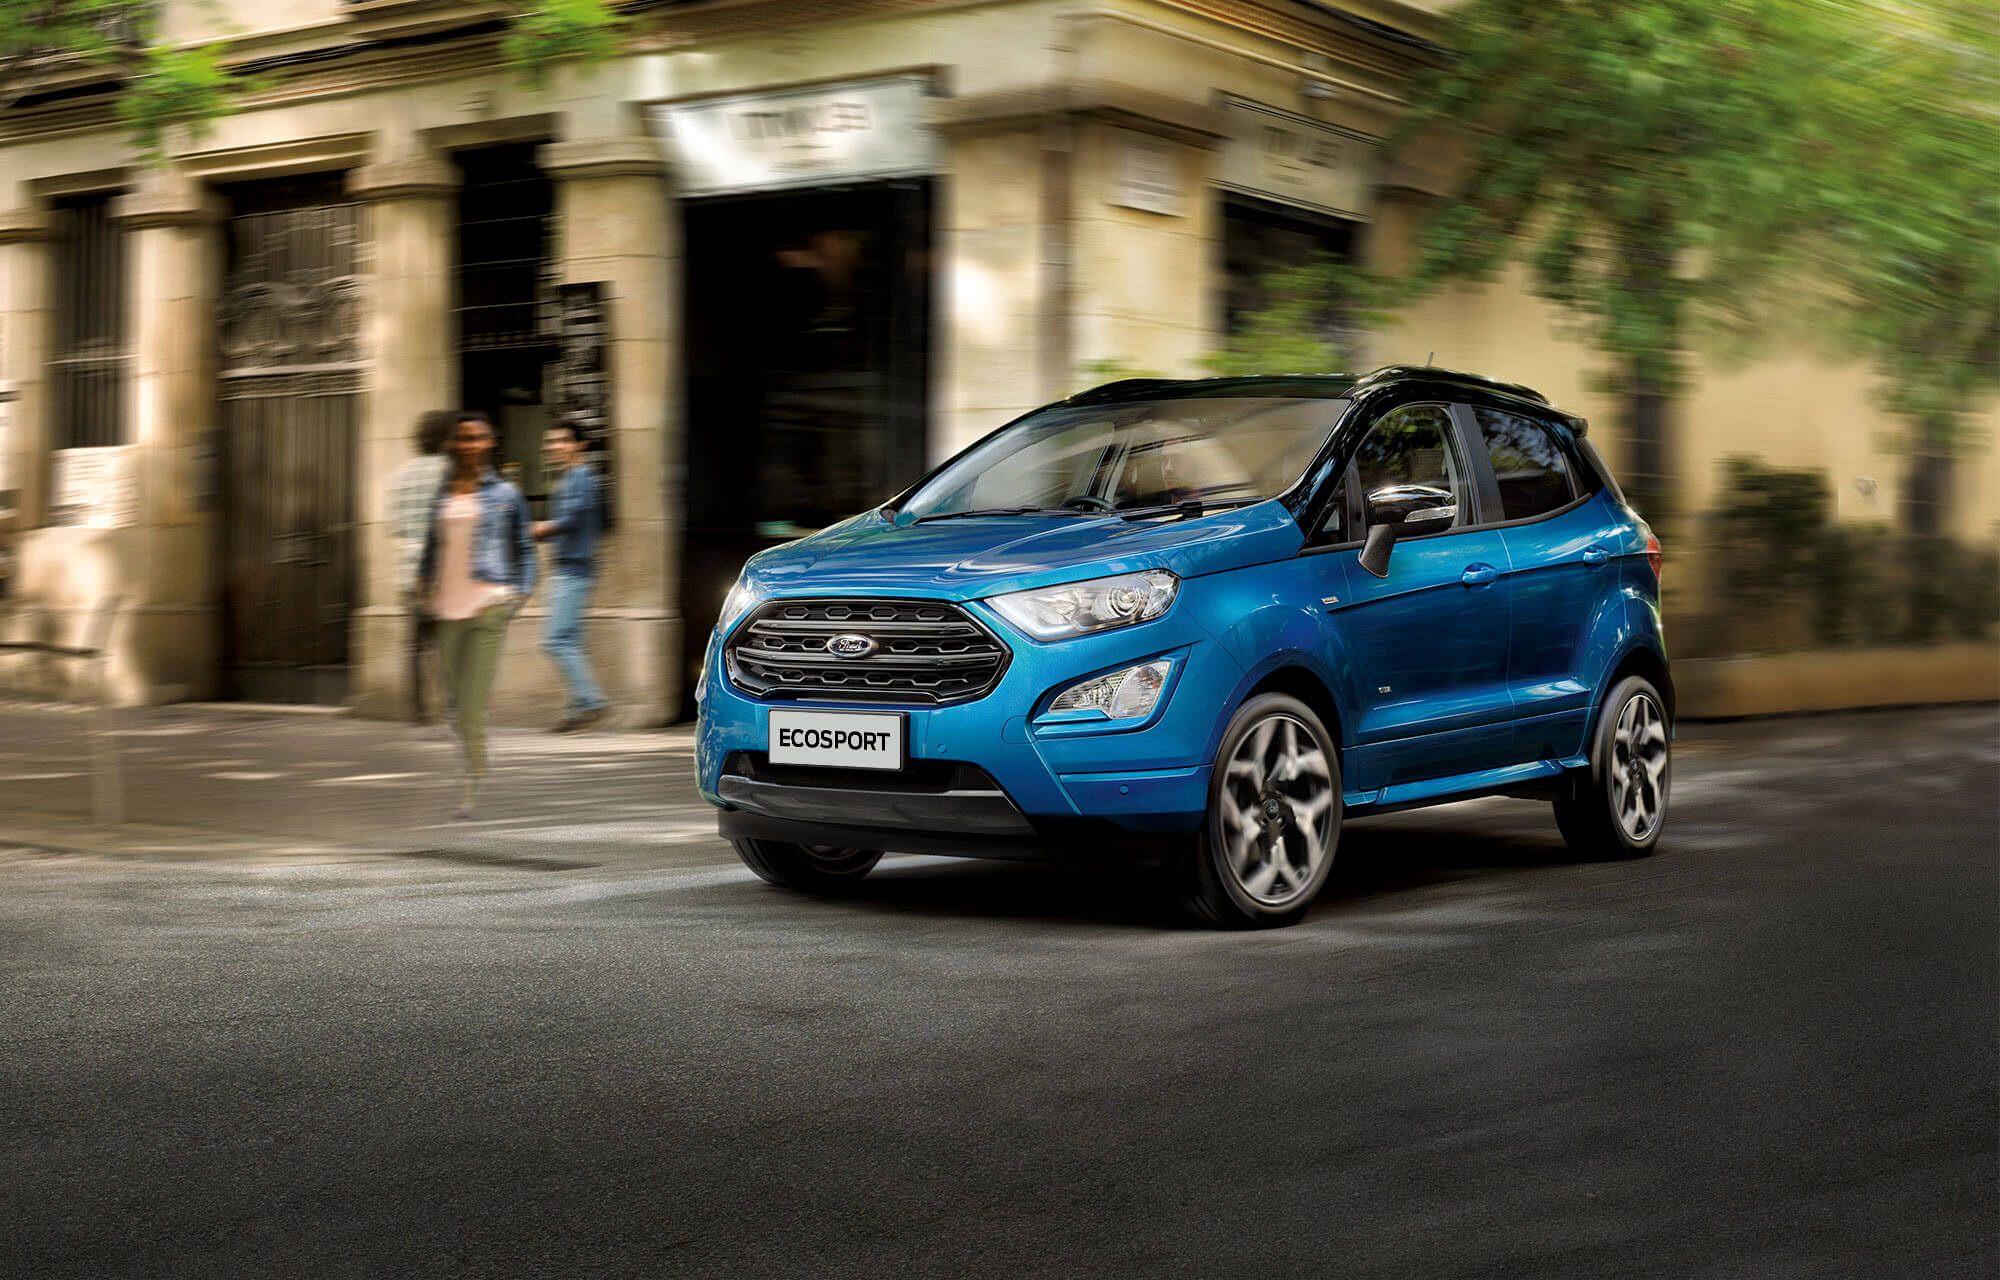 Ford Ecosport at Porter Ford, Sligo